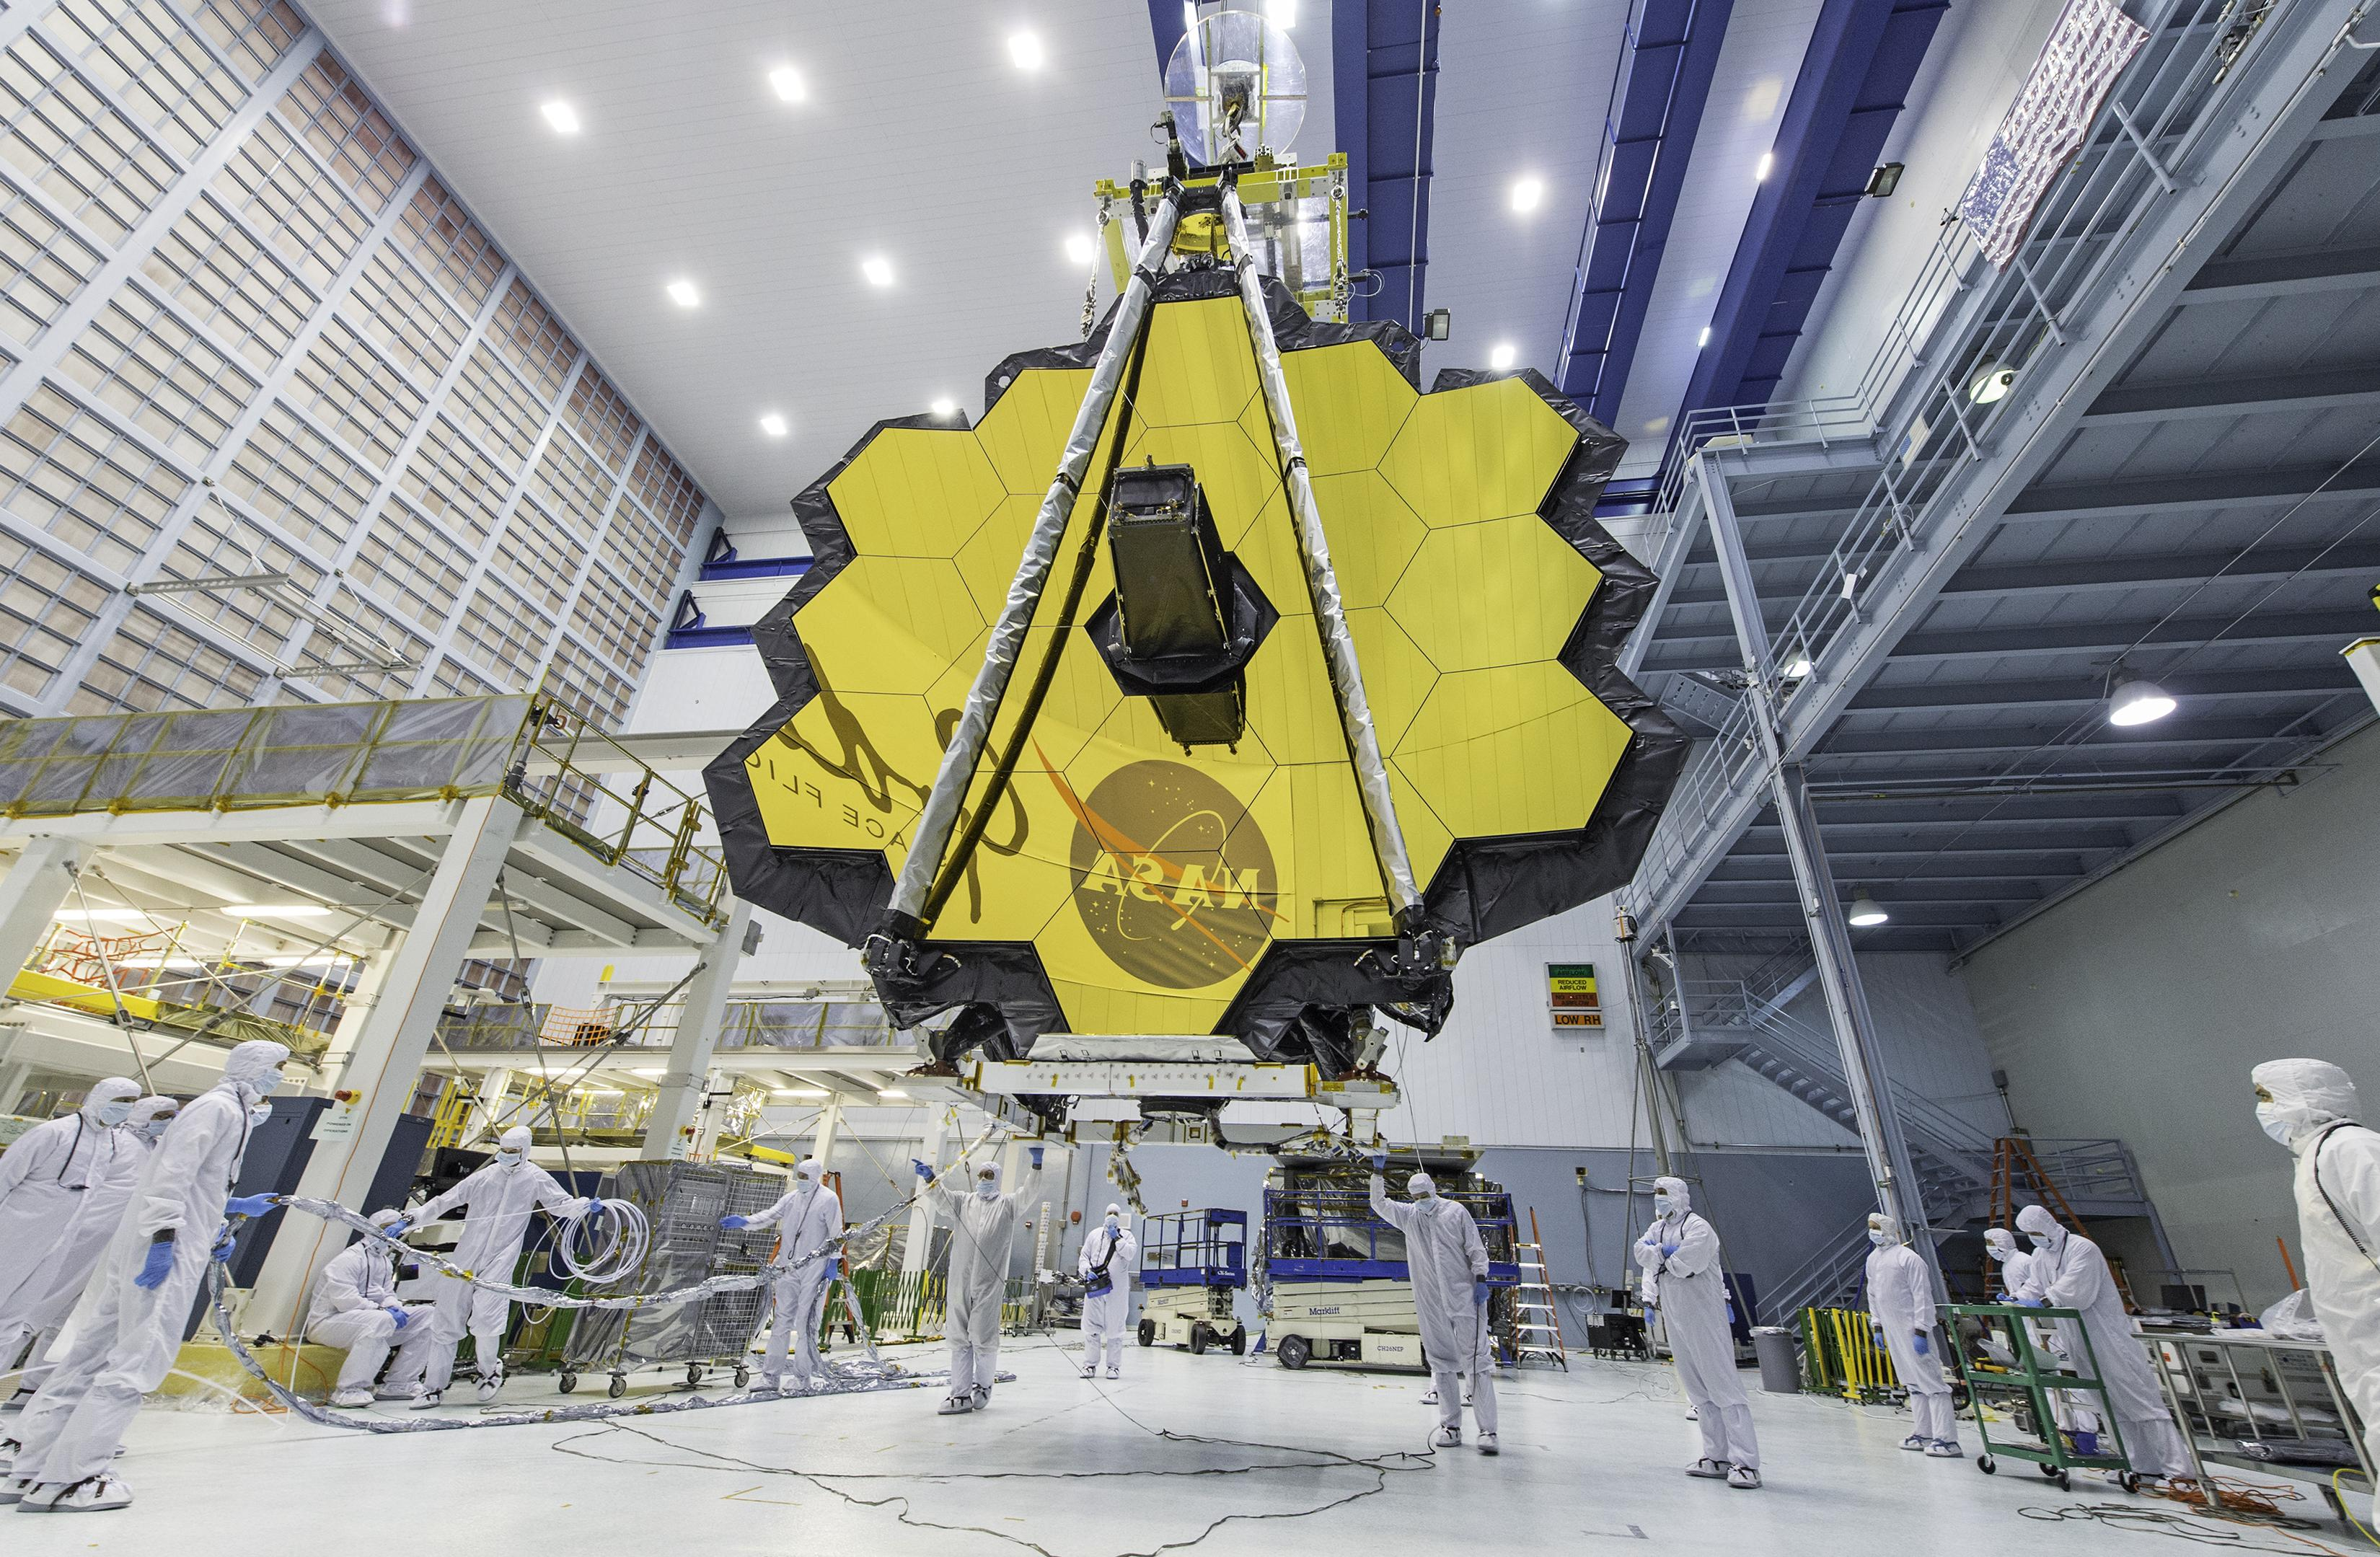 NASA Says James Webb Space Telescope Science Targets Include Icy Moons, Galaxy Clusters, Distant Worlds